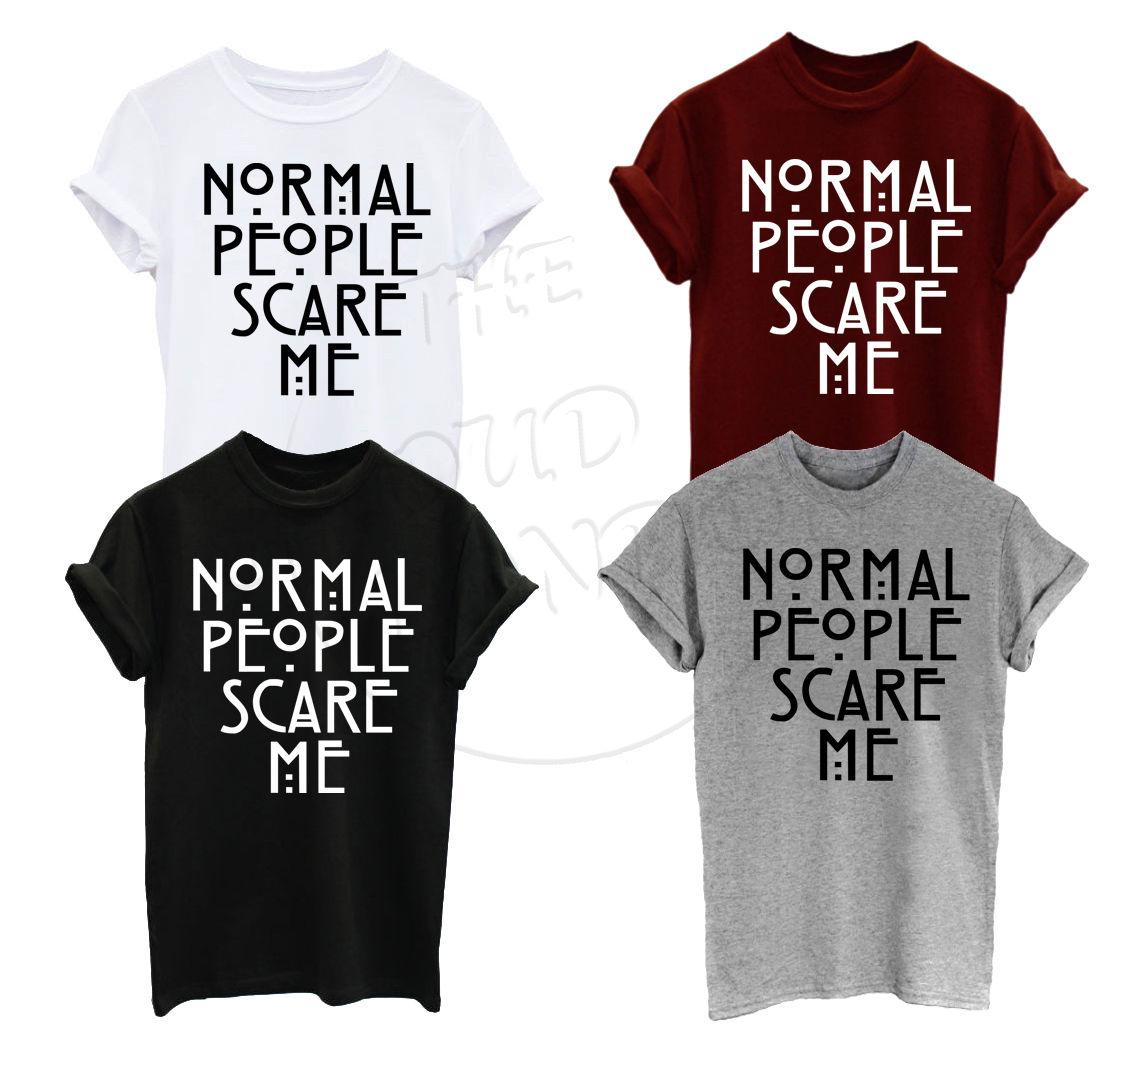 36f9e3d79 NORMAL PEOPLE SCARE ME HORROR STORY TUMBLR FASHION FUNNY MENS WOMENS TSHIRT  Shop For T Shirts Online T Shirt With A T Shirt On It From Happyluke, ...